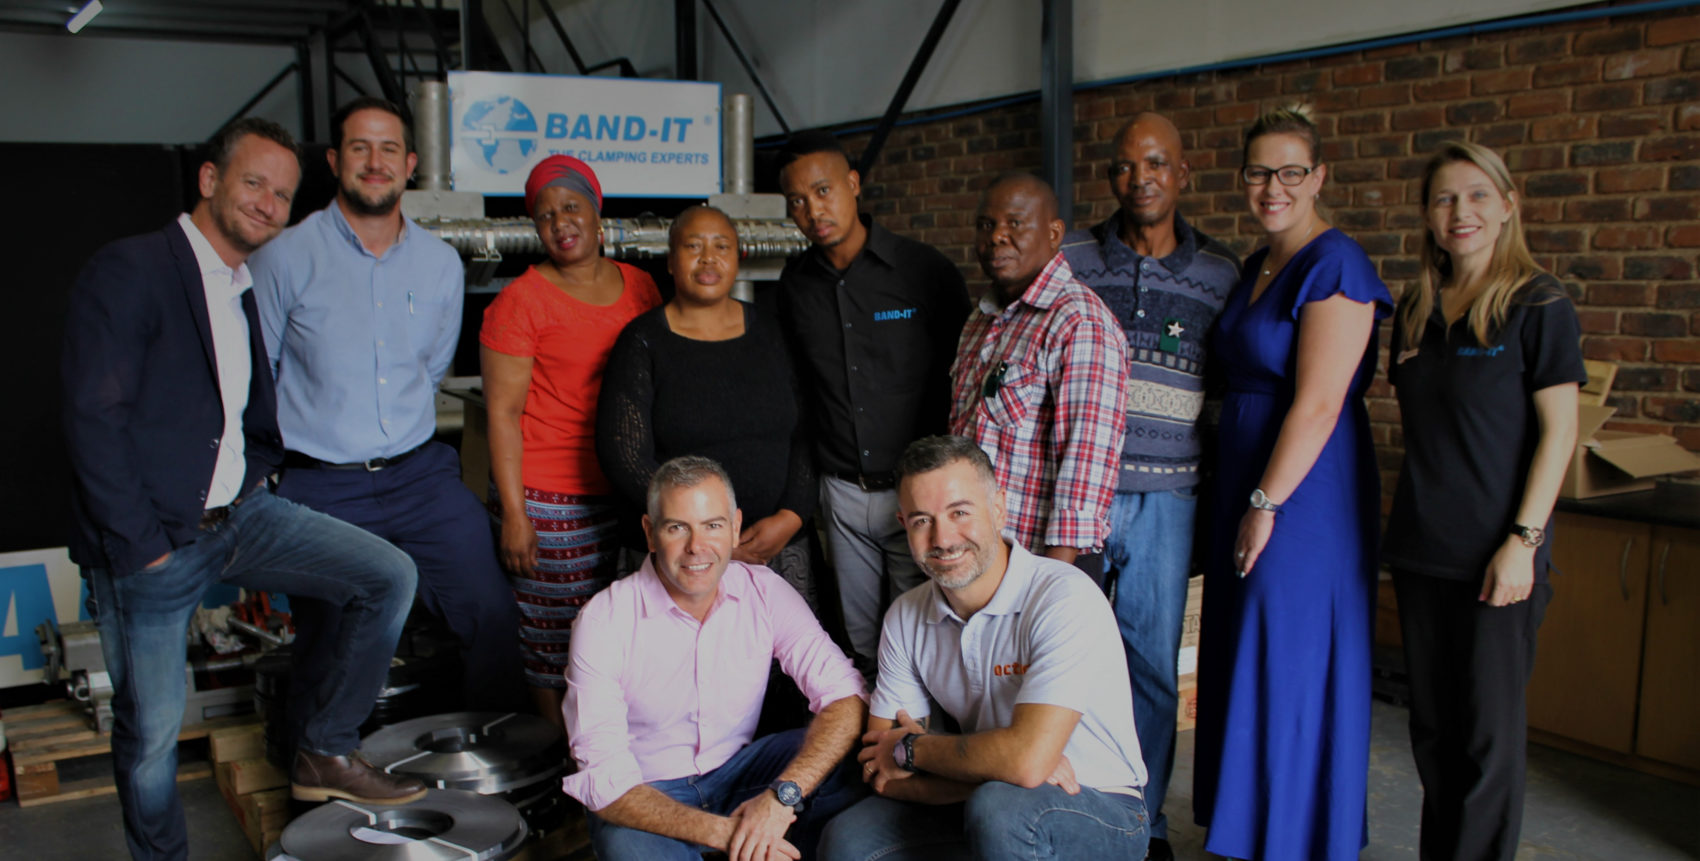 Actum extends its brand portfolio by acquiring the Band-It business in South Africa